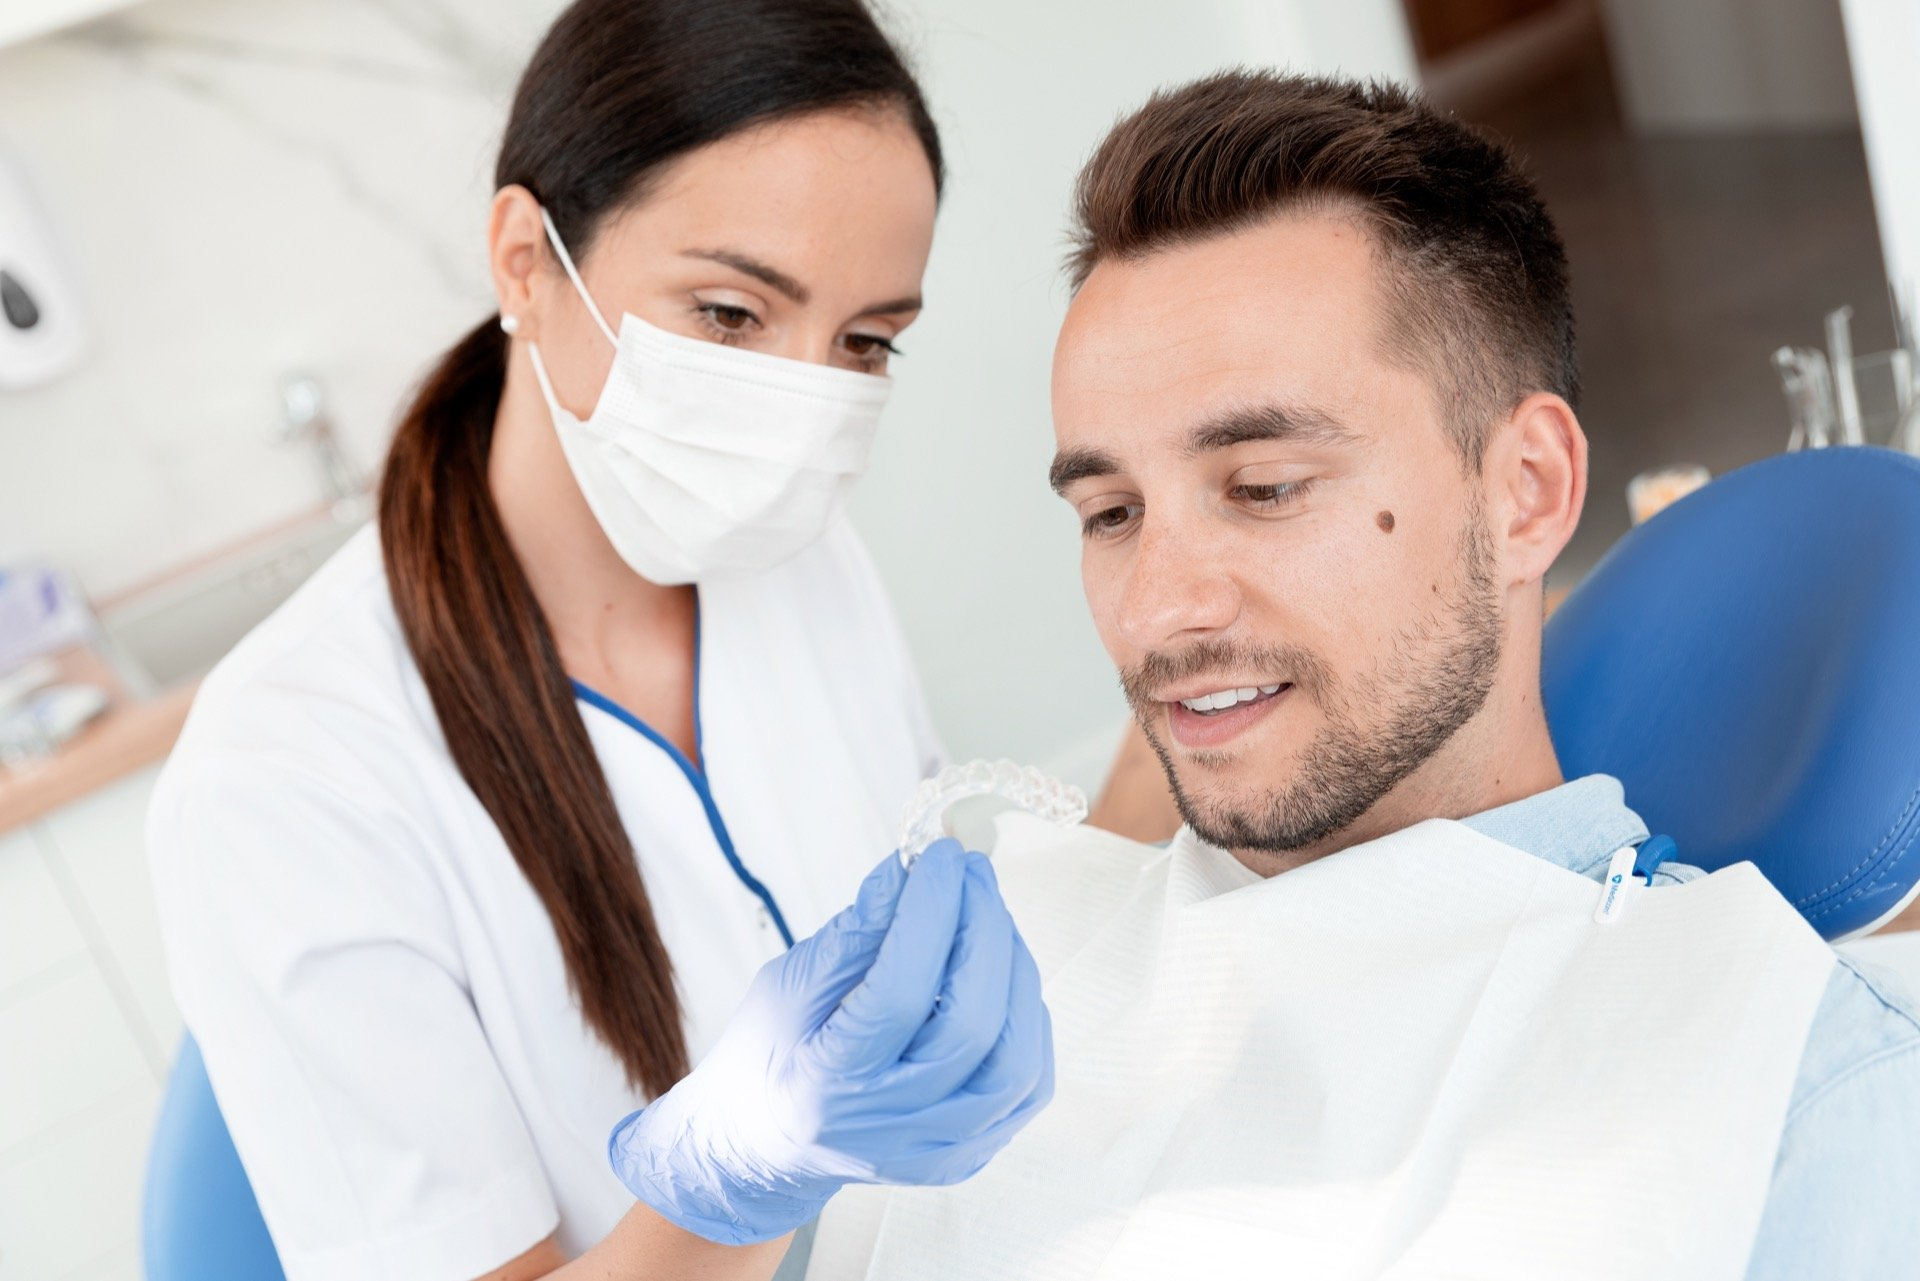 Orthodontist showing benefits of Invisalign to patient